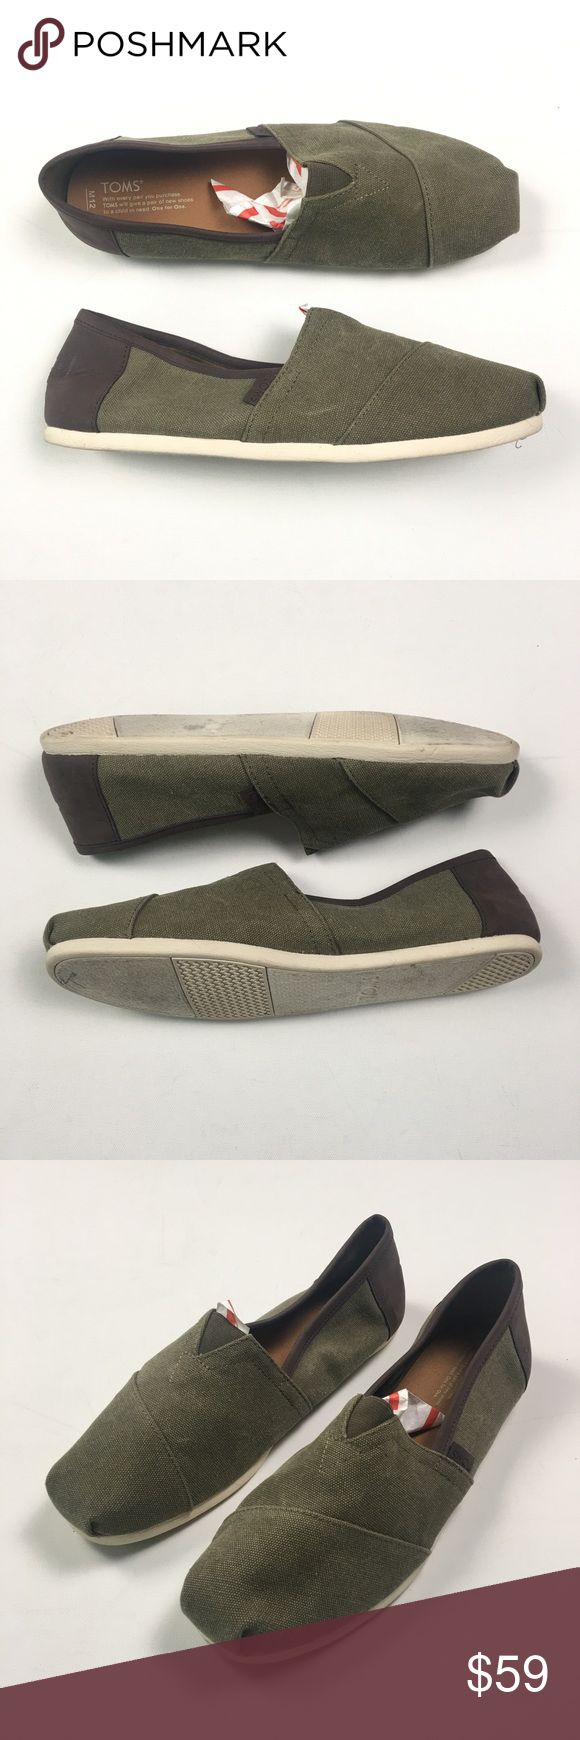 Toms Mens Olive Slip On Size 12 C63 Gently used. Toms Shoes Loafers & Slip-Ons